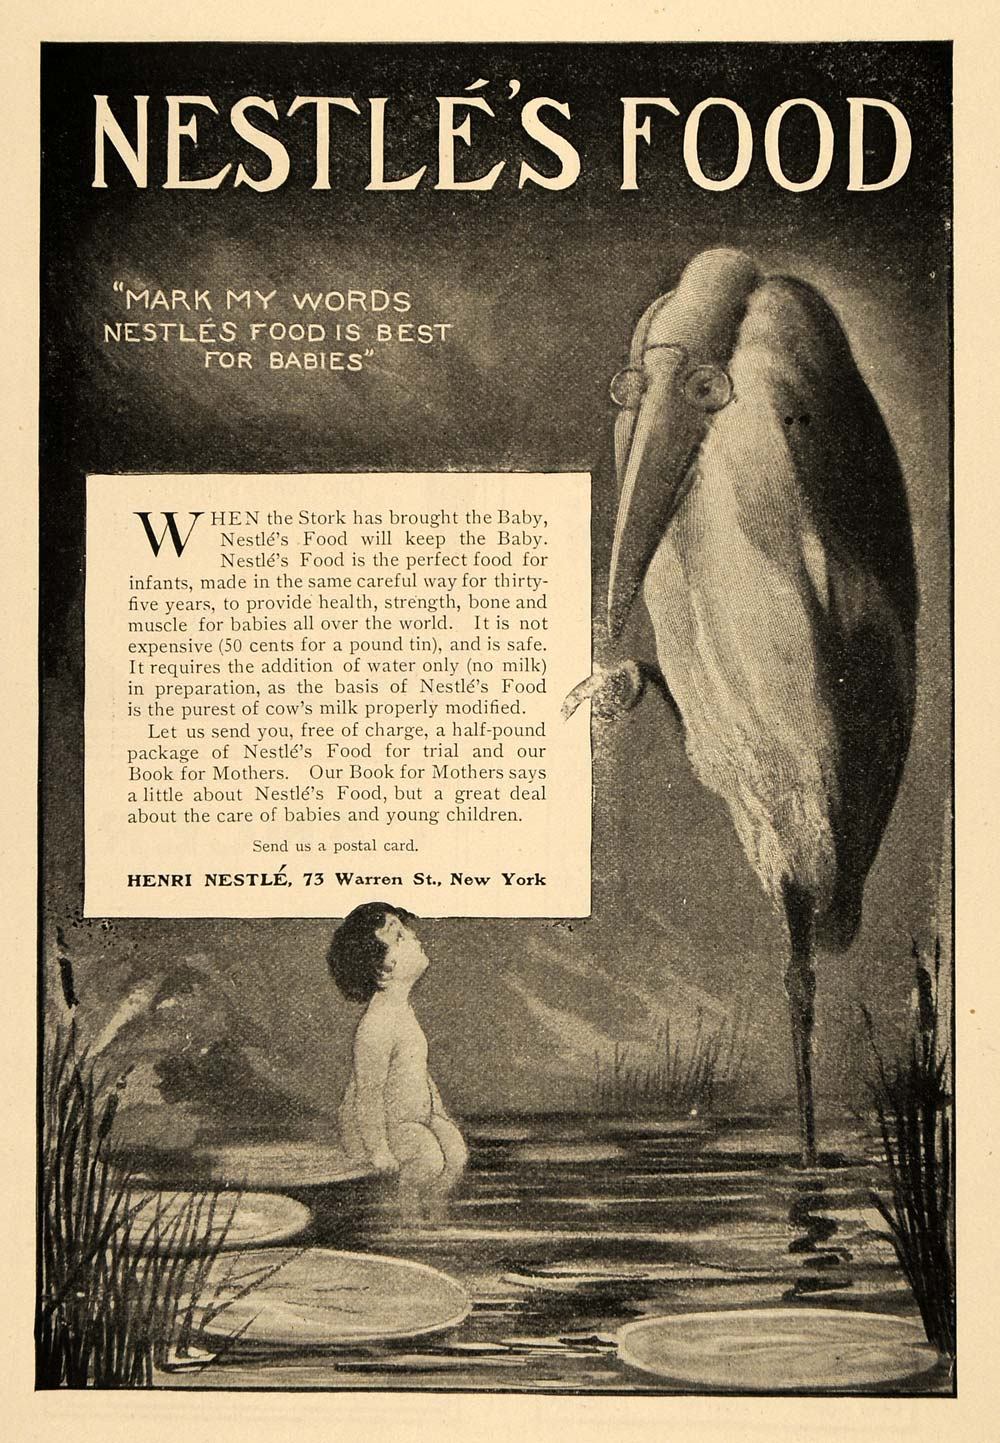 1902 Ad Henri Nestle Stork Bird Food Baby Formula Pond - ORIGINAL TOM3